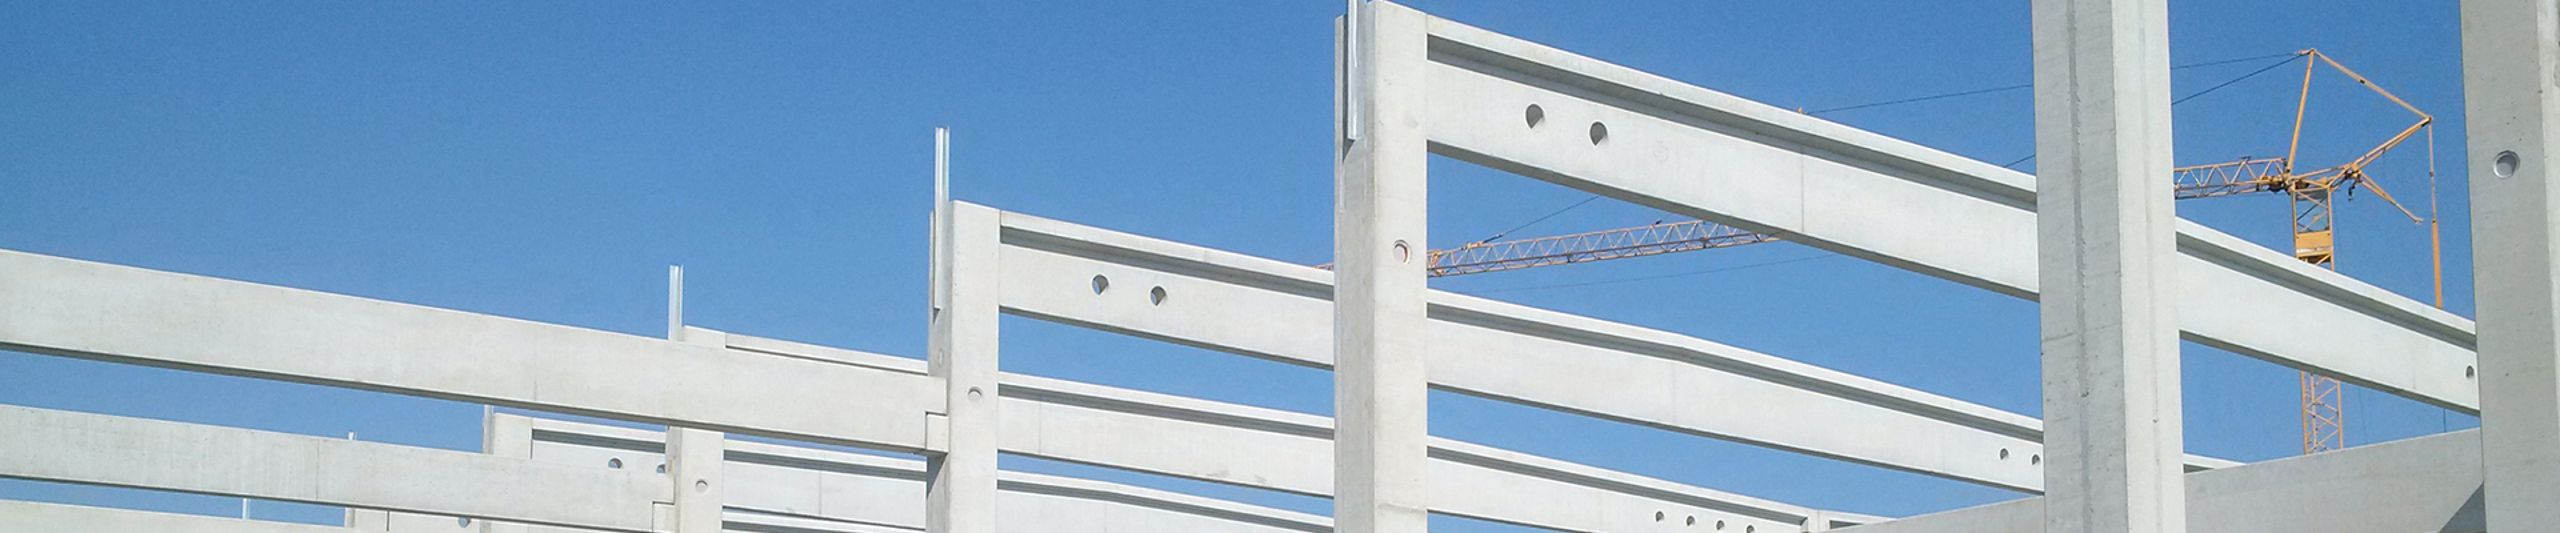 Constructive precast concrete parts such as solid walls, ceilings